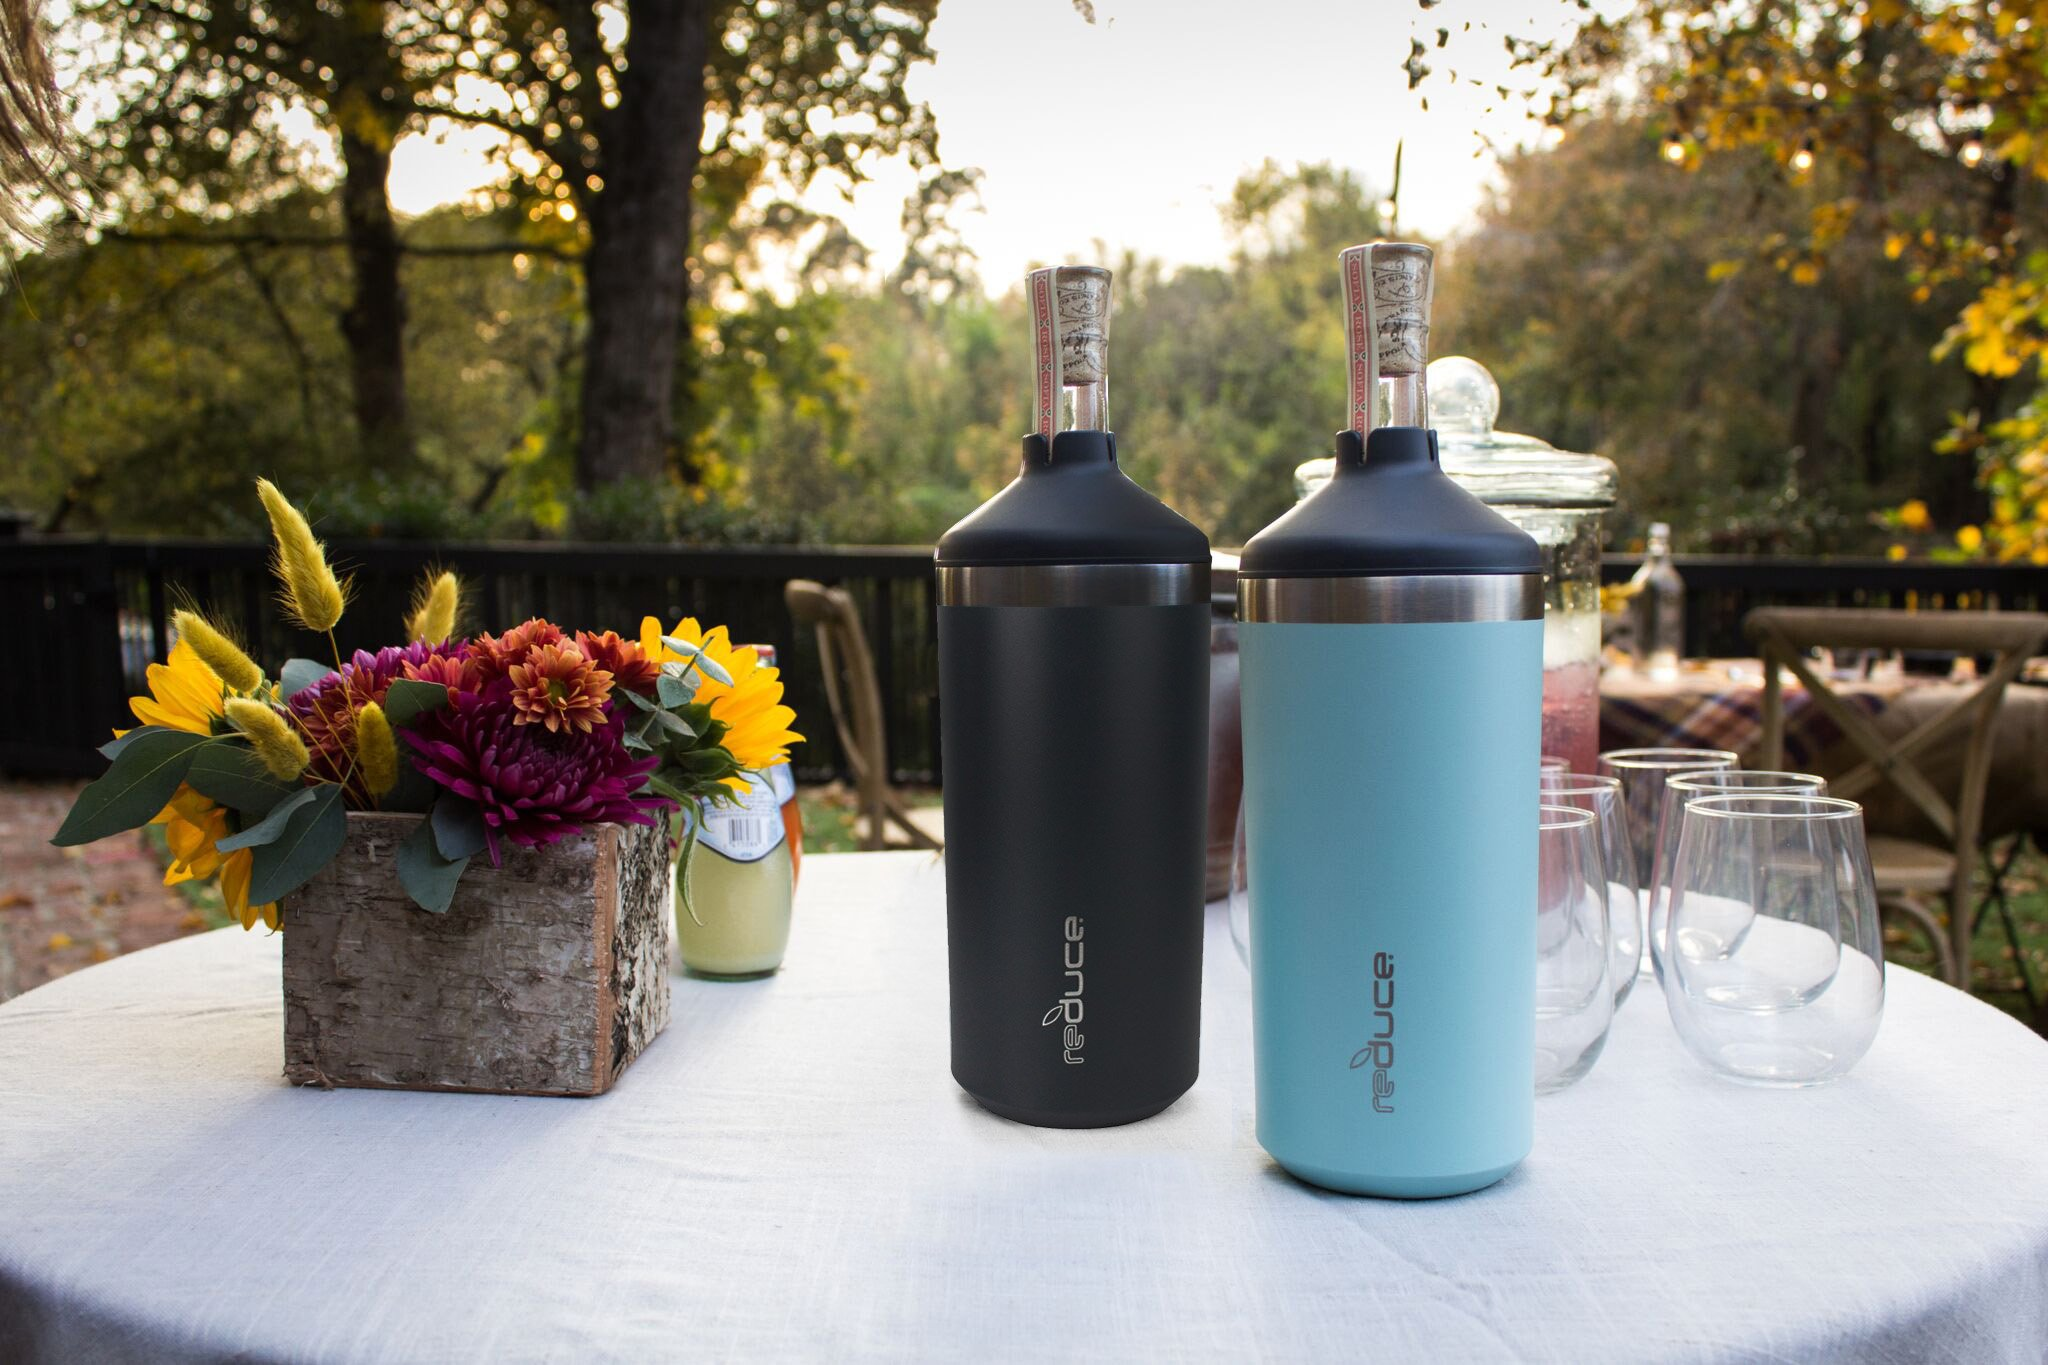 Portable Wine Bottle Cooler by REDUCE - Stainless Steel, Insulated Chiller to Keep Wine at the Perfect Temperature, No Ice Required - Ideal for Outdoor Summer Parties, Fits Most Wine Bottles - Mint by REDUCE (Image #4)